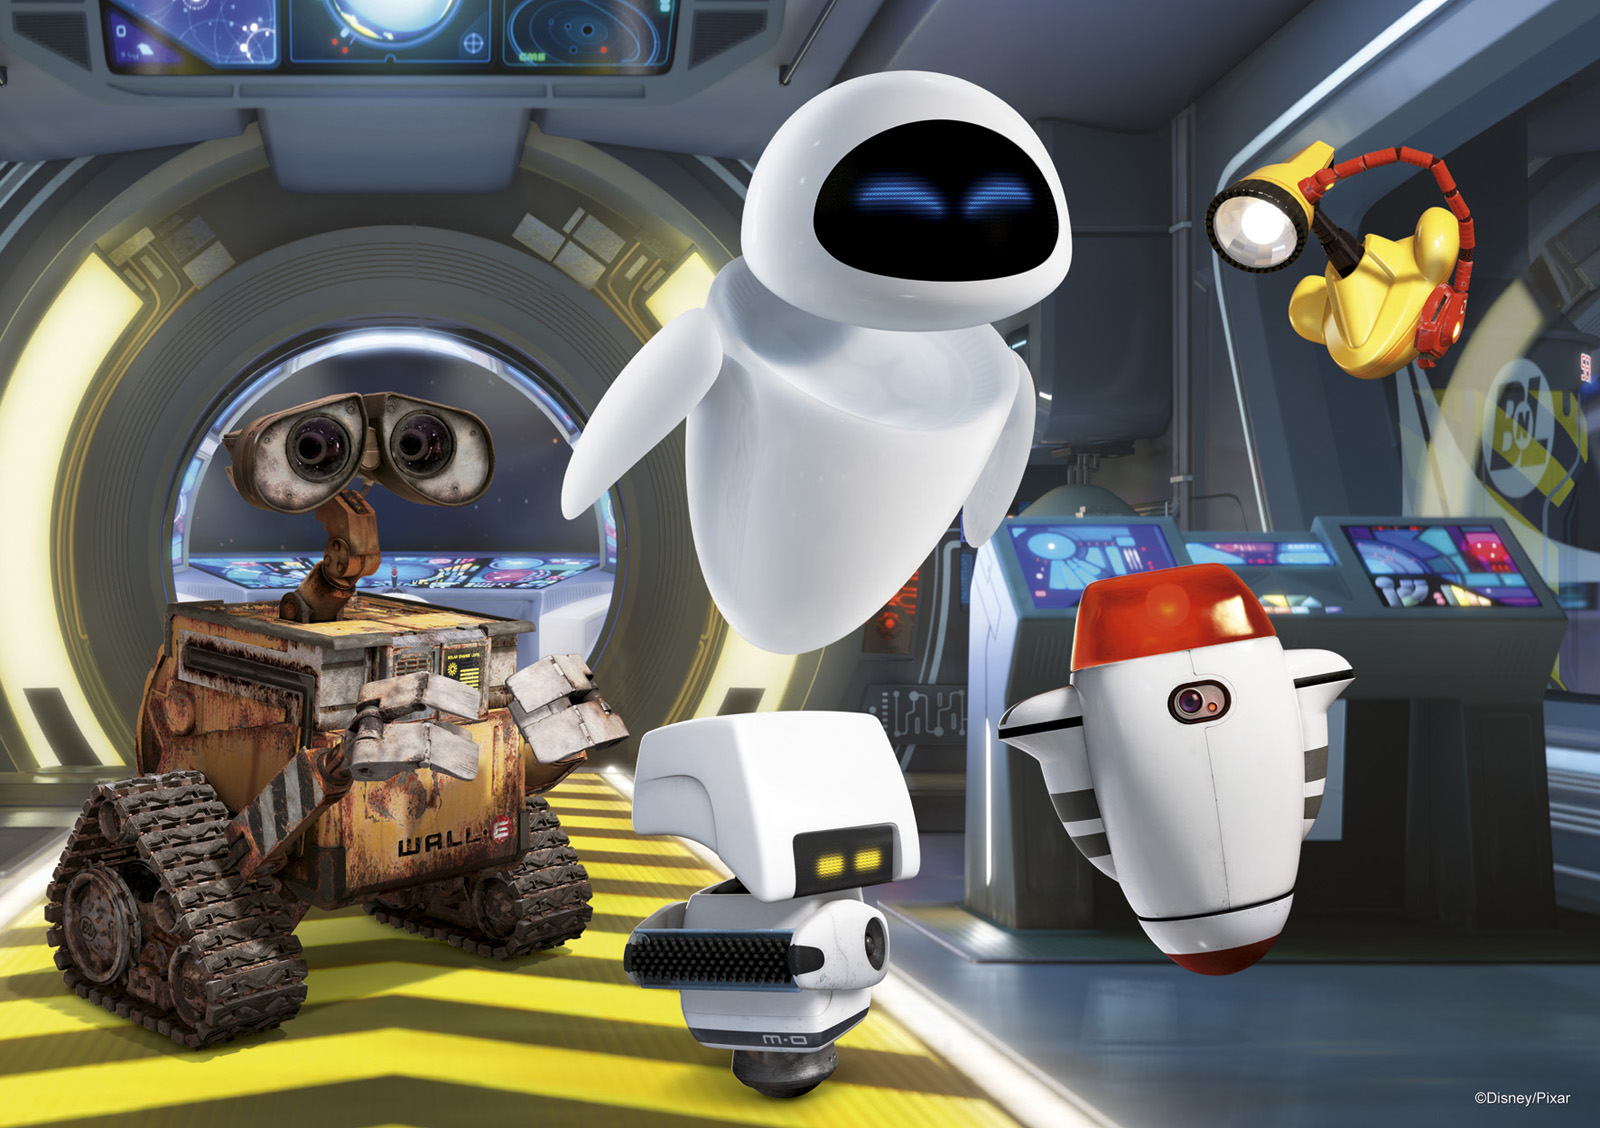 http://3.bp.blogspot.com/-SkVD2L89iDM/Tnx2VZScuGI/AAAAAAAABSI/s48fBSuolXA/s1600/Wall-E_All_Character_Desktop_Wallpapers_Vvallpaper.net.jpg